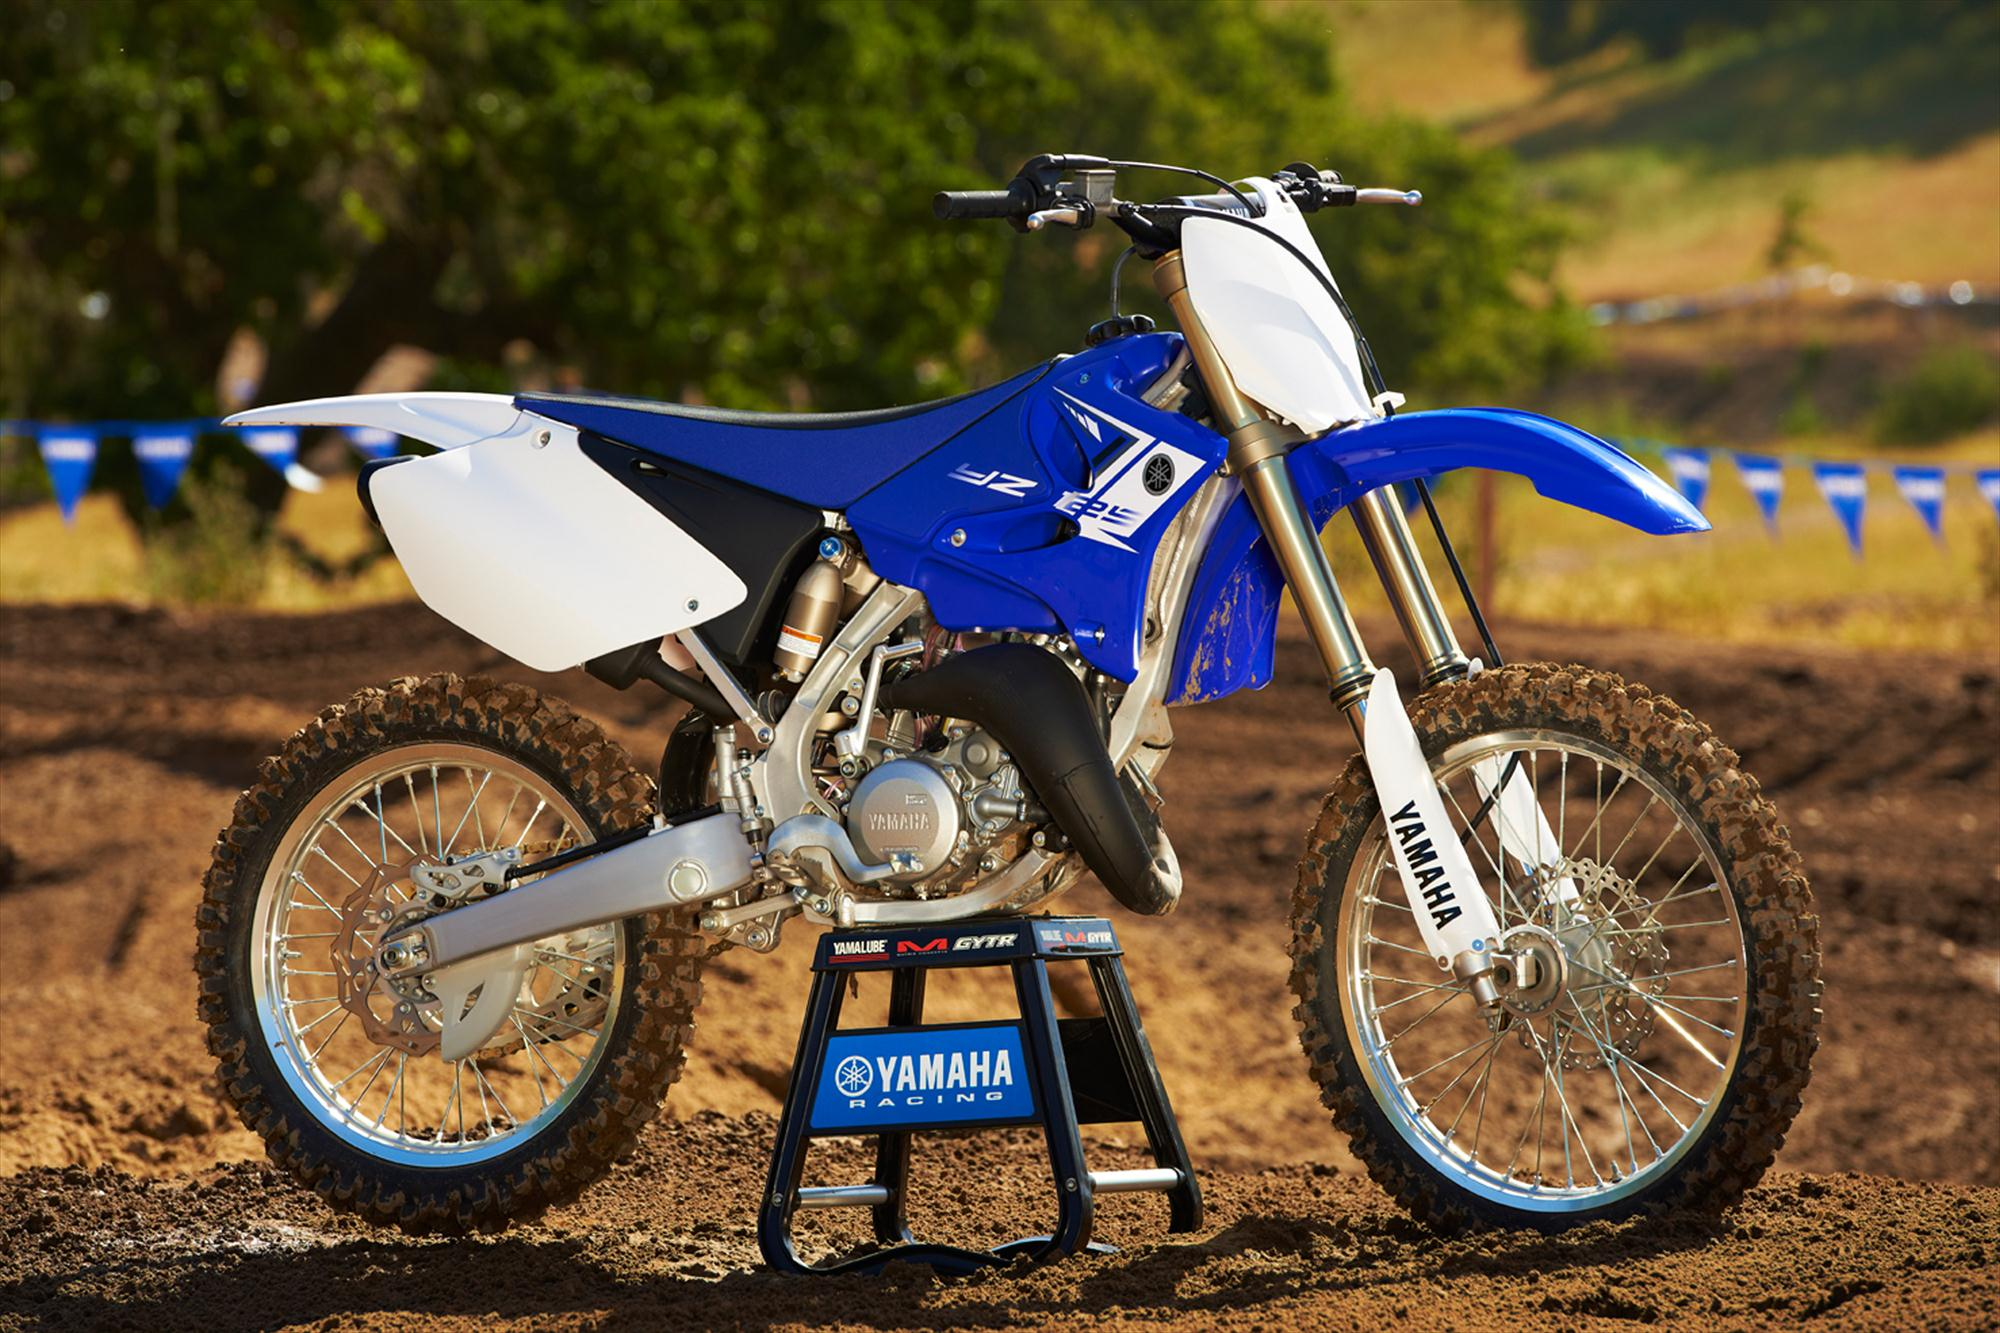 2013 yamaha yz125 race ready out of the crate autoevolution. Black Bedroom Furniture Sets. Home Design Ideas